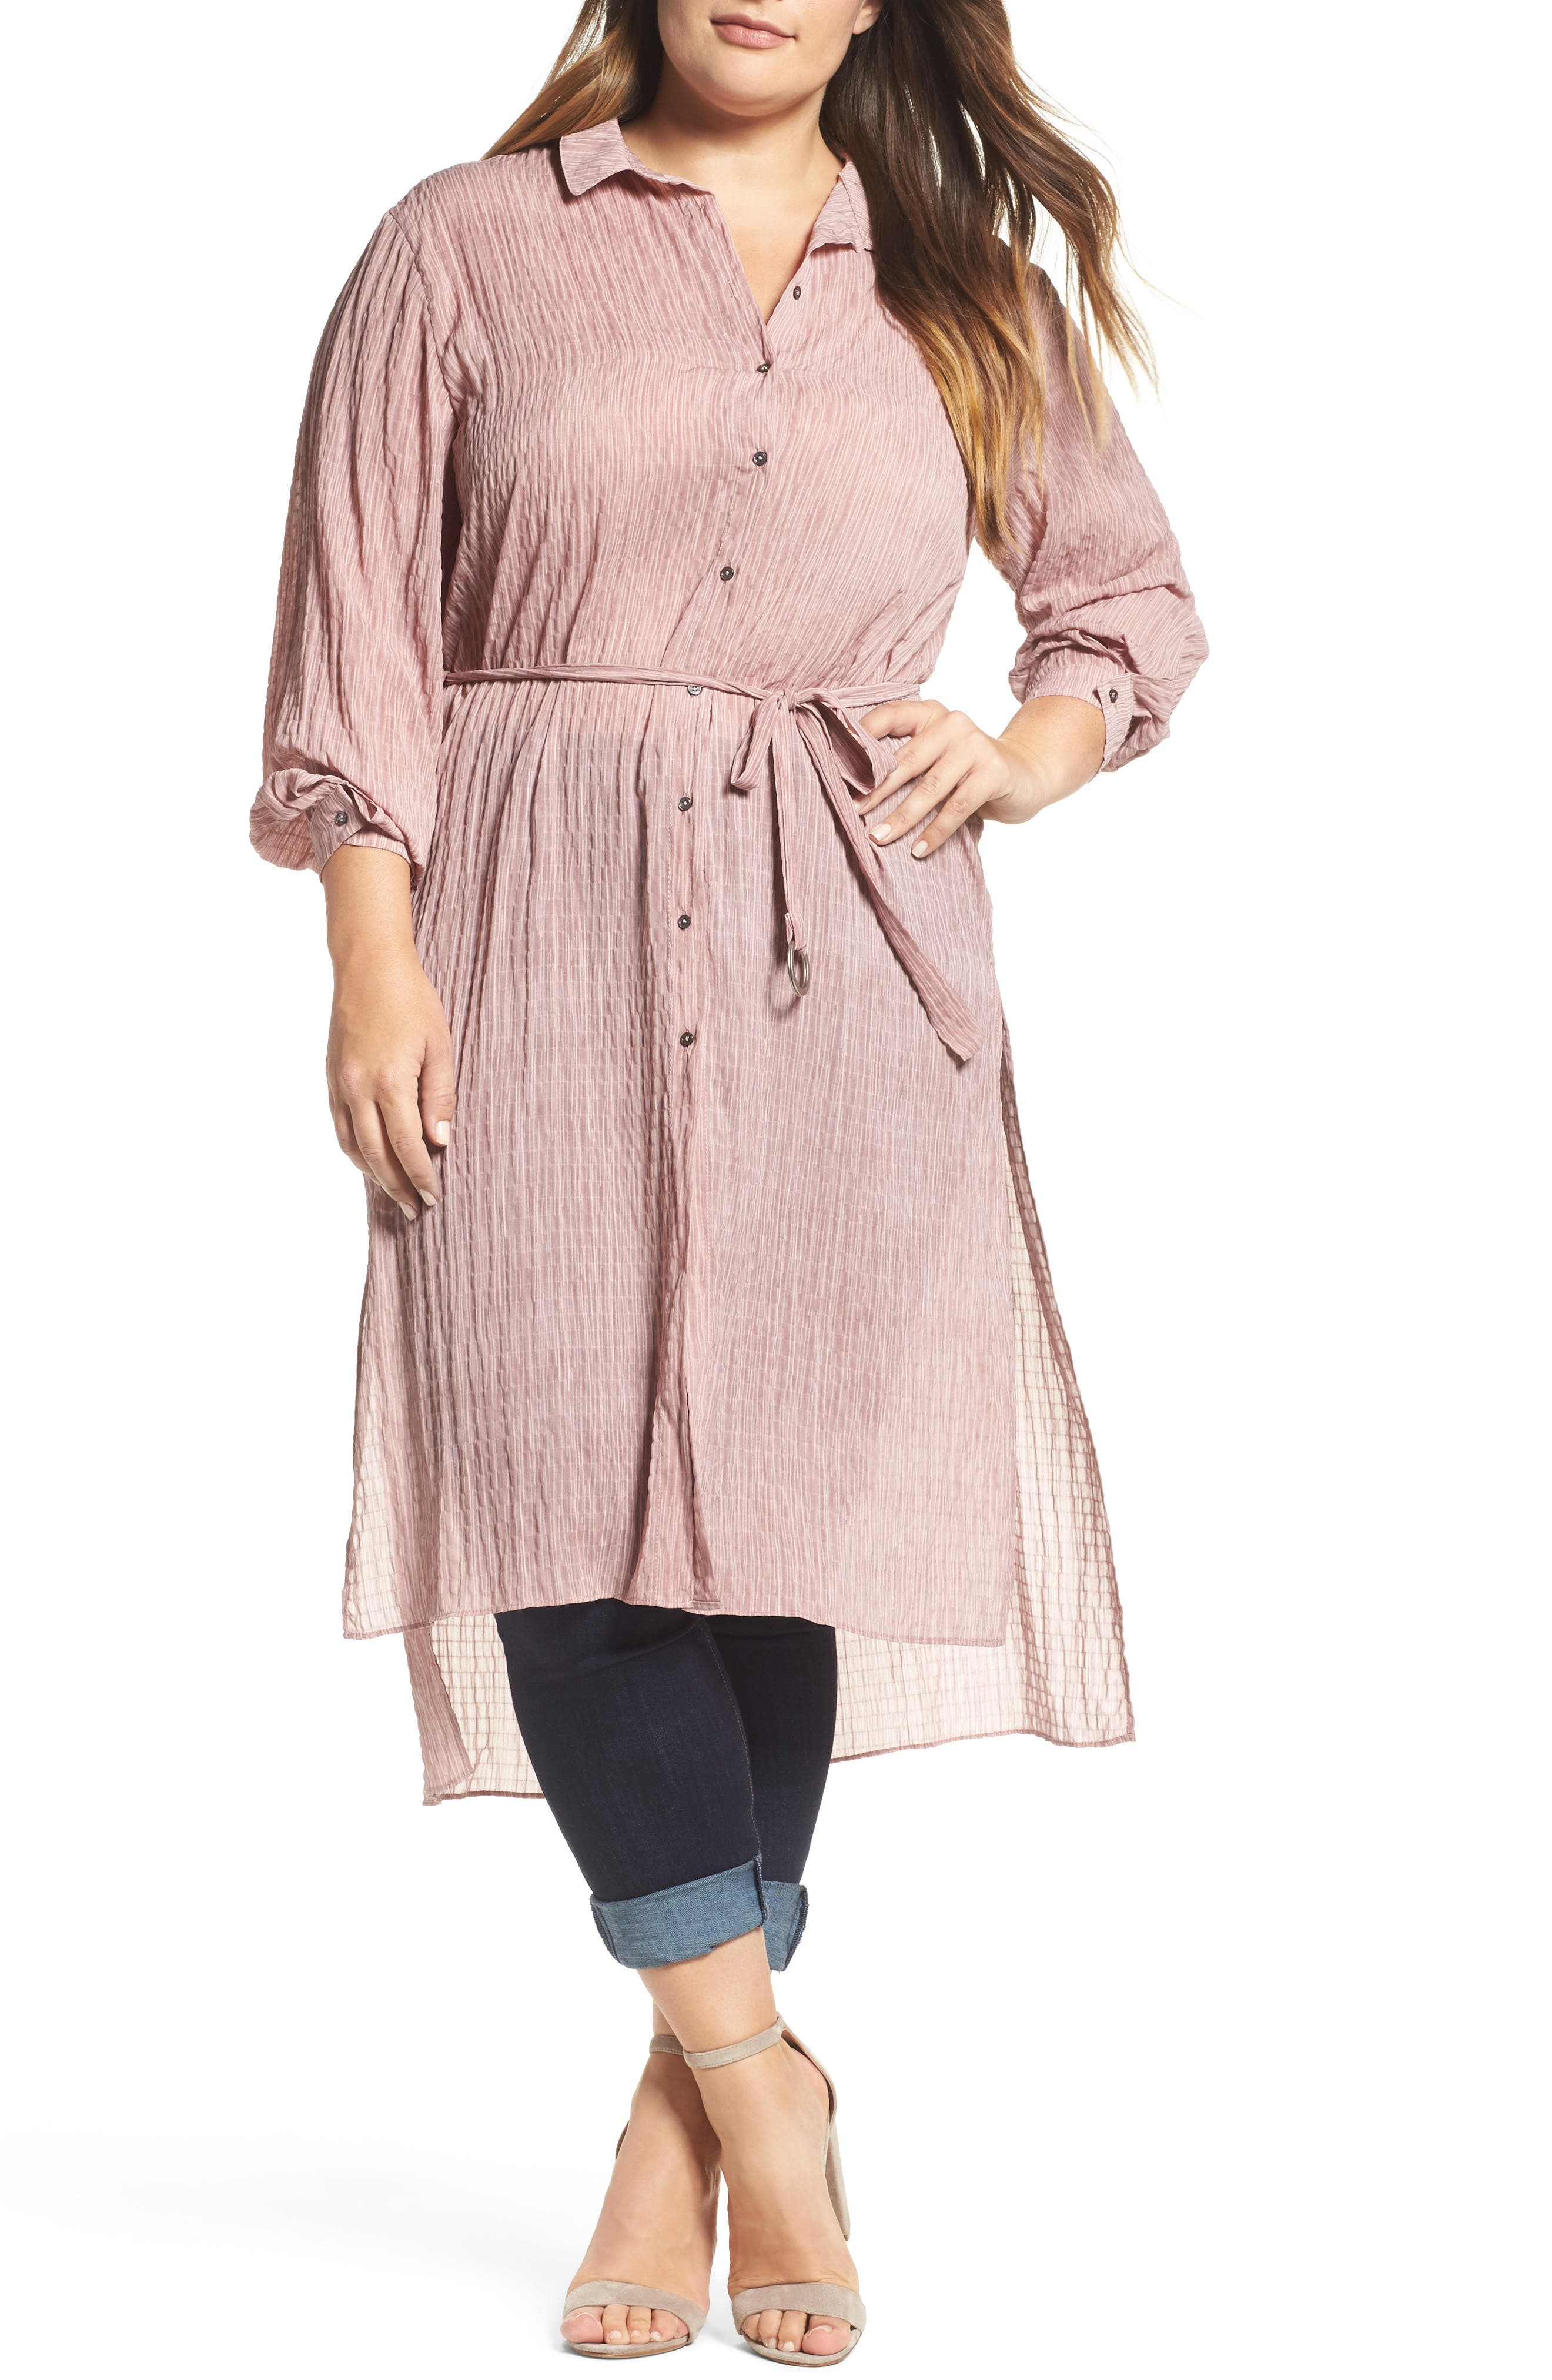 ELVI High/Low Shirtdress (Plus Size)